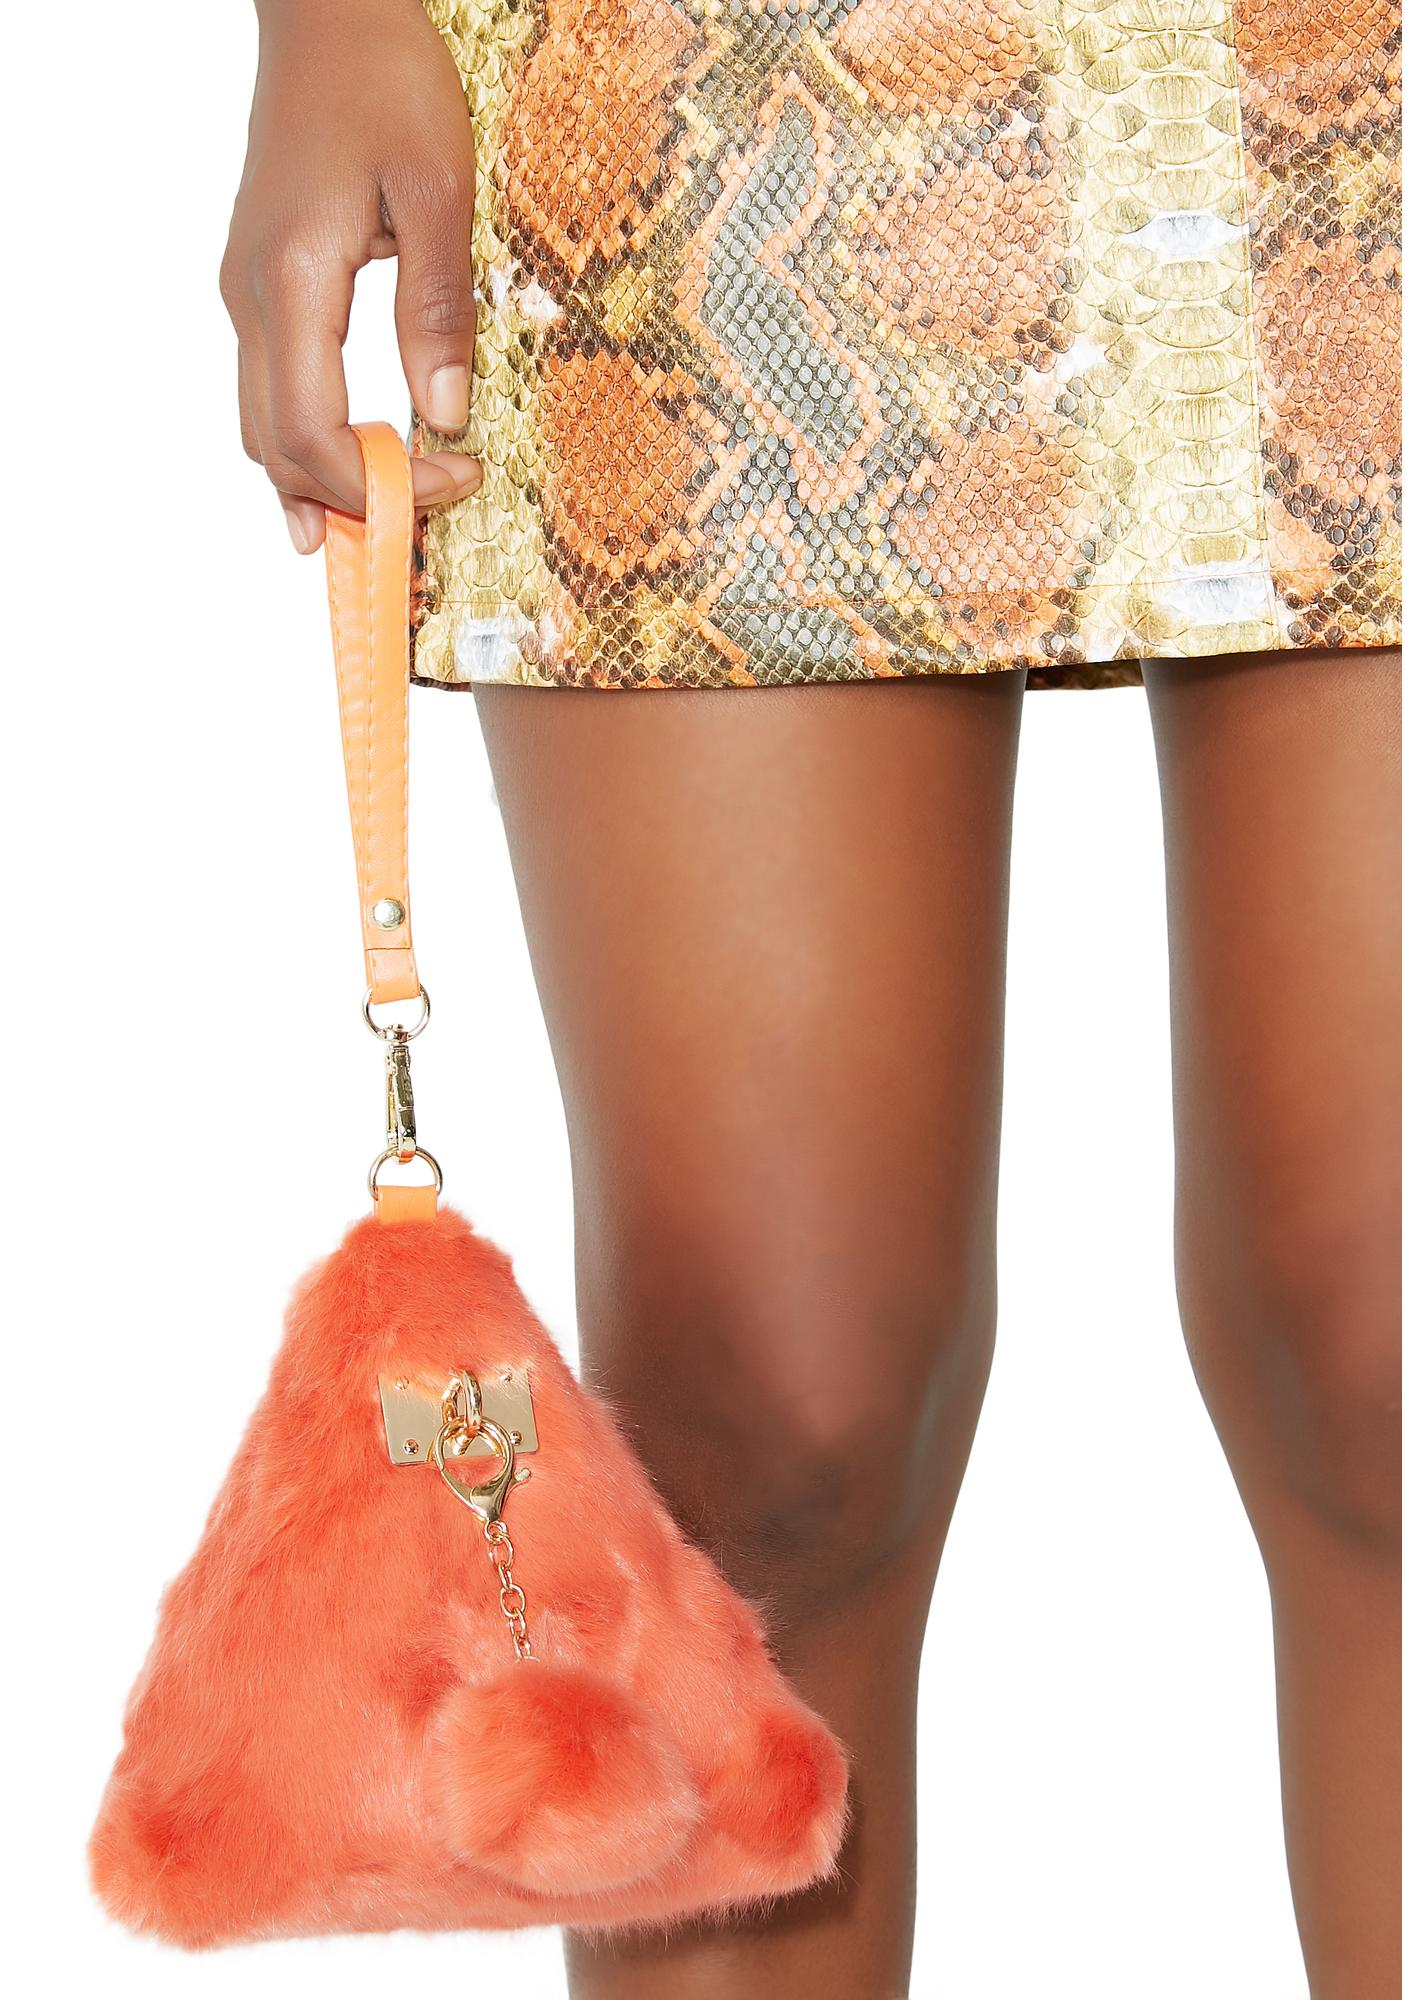 Triple Threat Fuzzy Wristlet